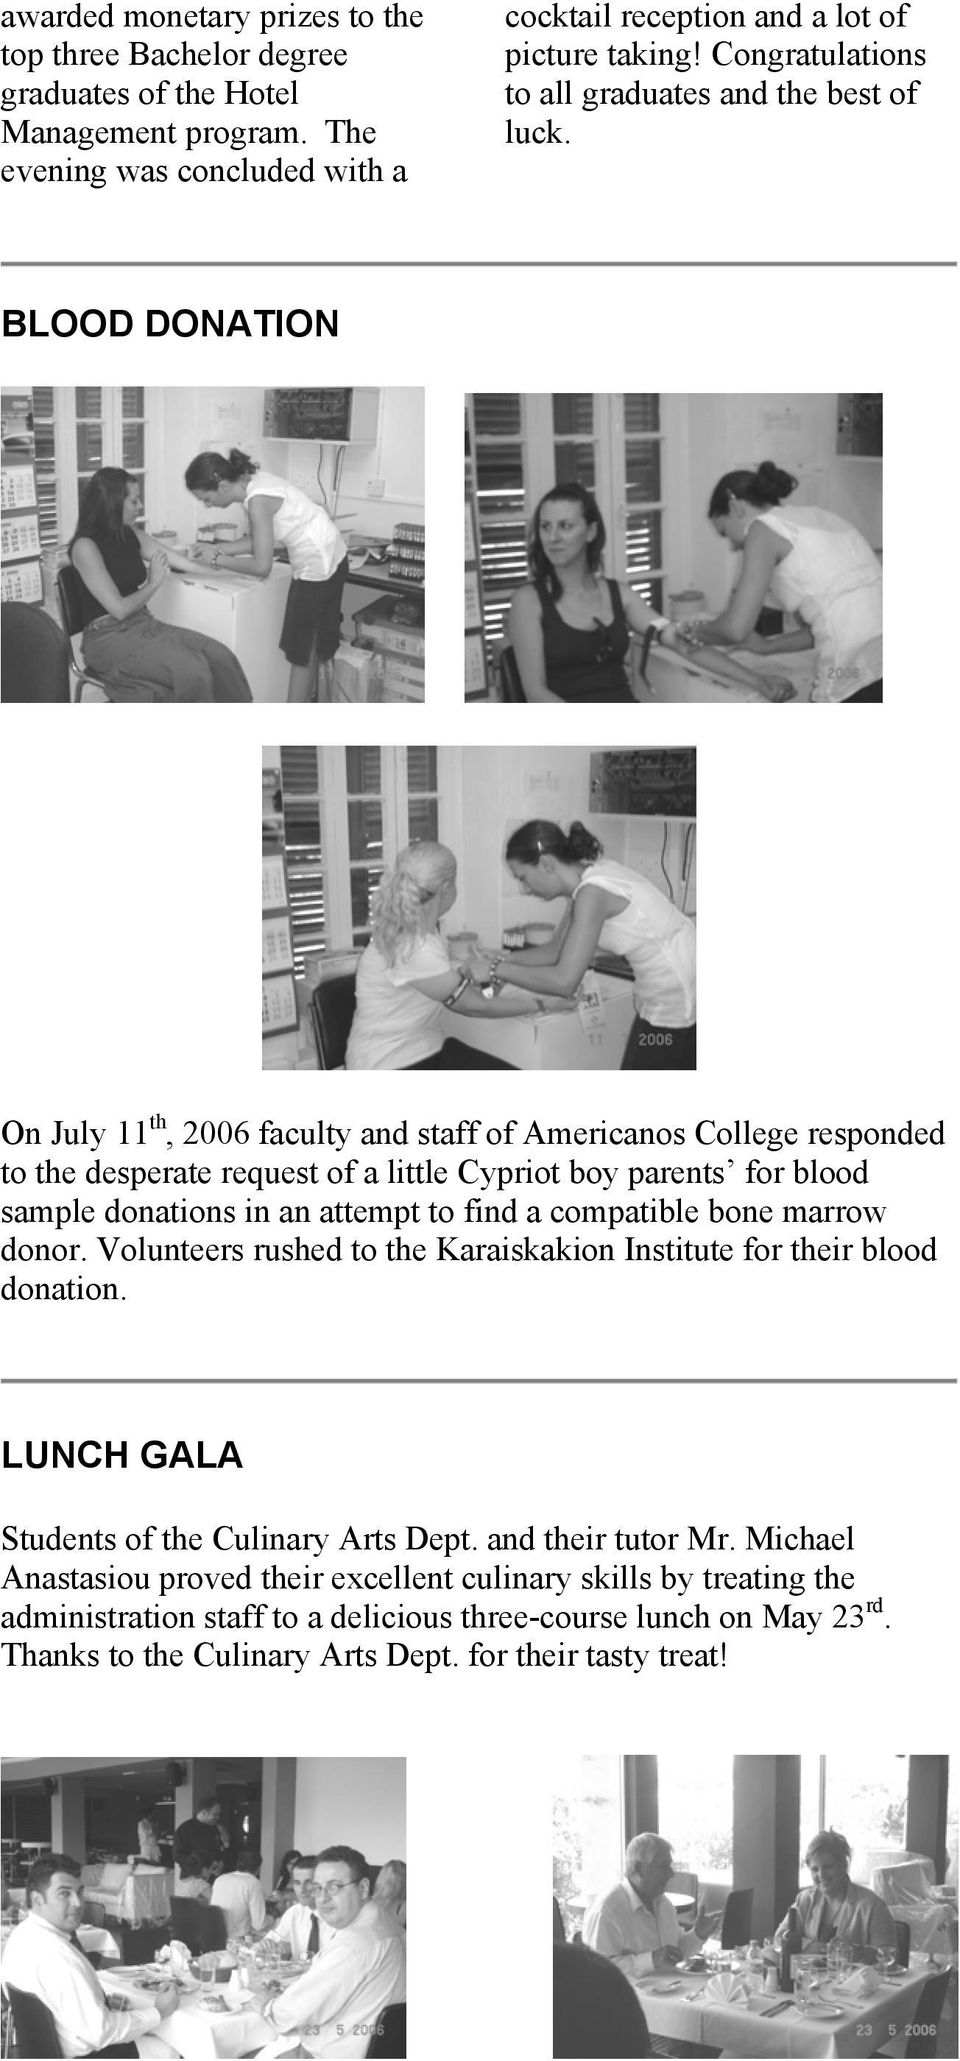 BLOOD DONATION On July 11 th, 2006 faculty and staff of Americanos College responded to the desperate request of a little Cypriot boy parents for blood sample donations in an attempt to find a